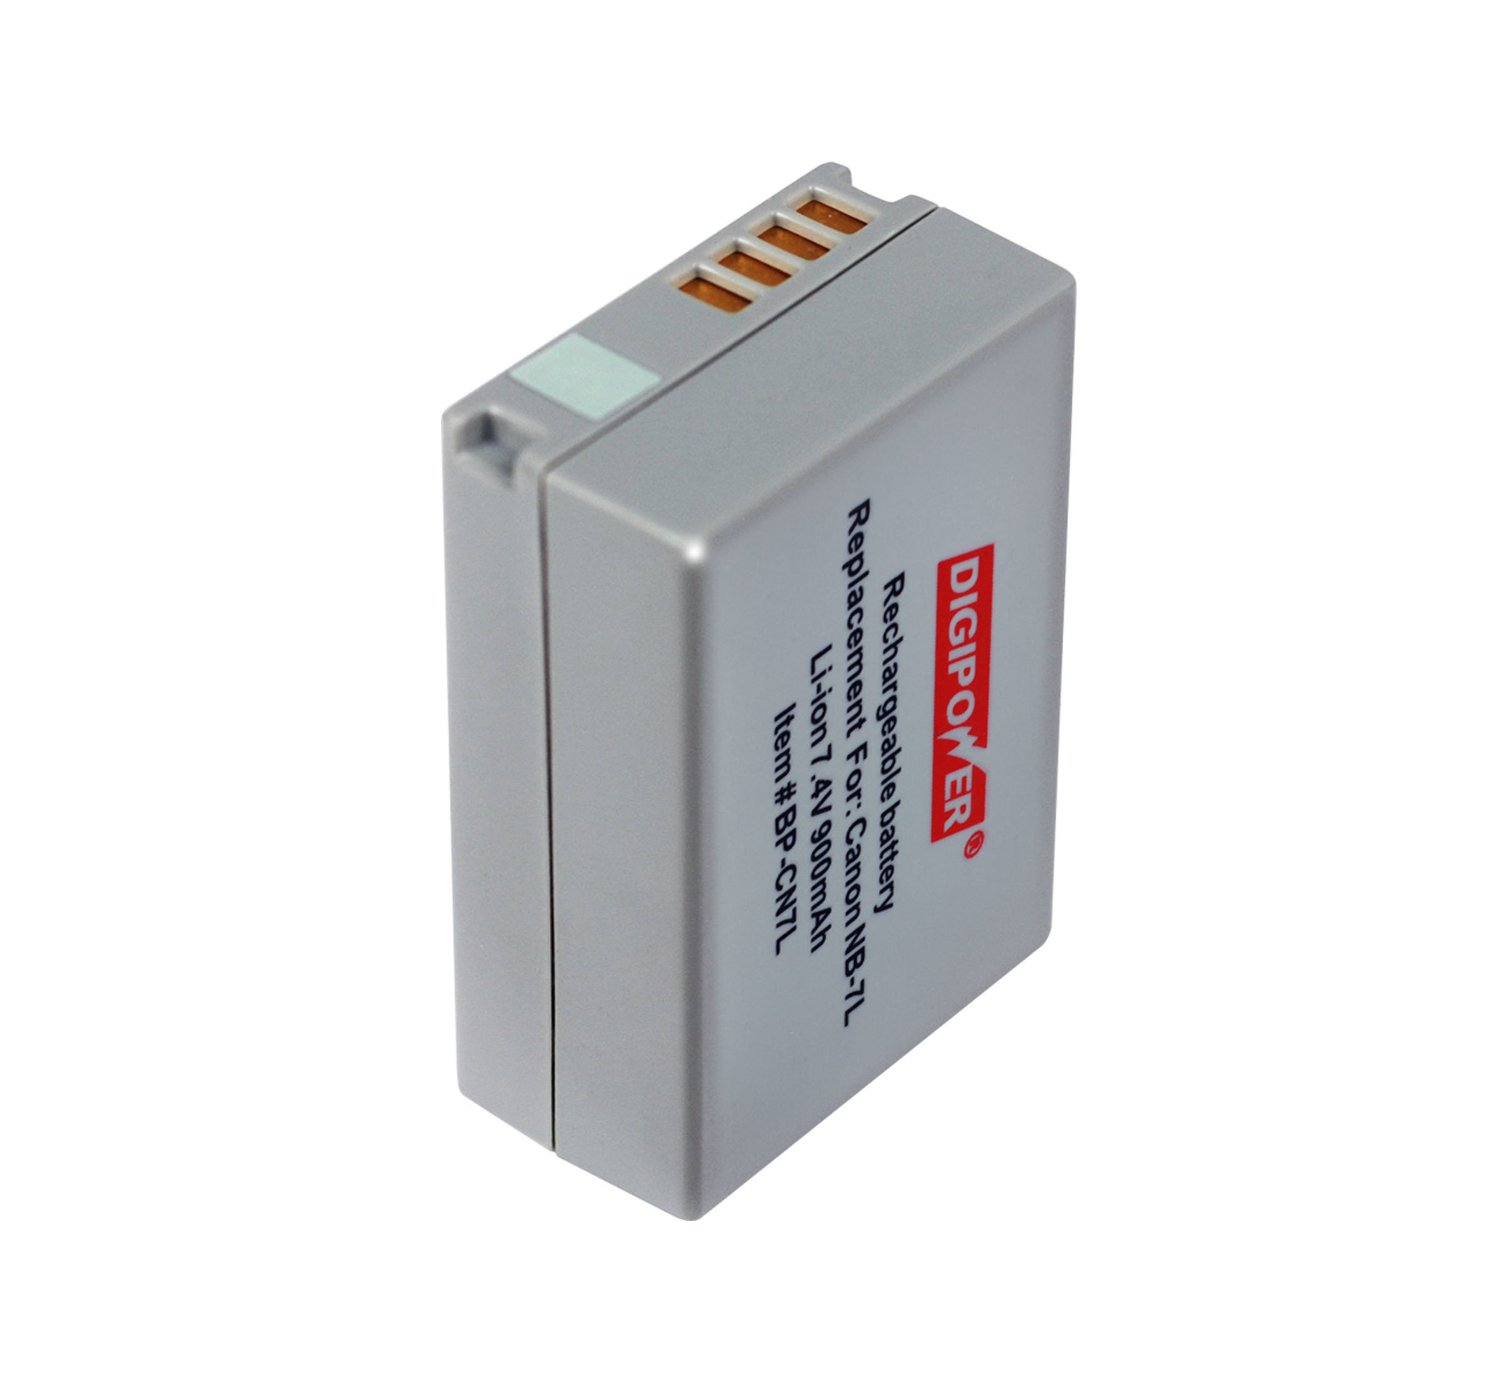 Digipower BP-CN7L Replacement Li-Ion Battery for Canon NB-7L for use with Canon G10 & G11 Digital Cameras